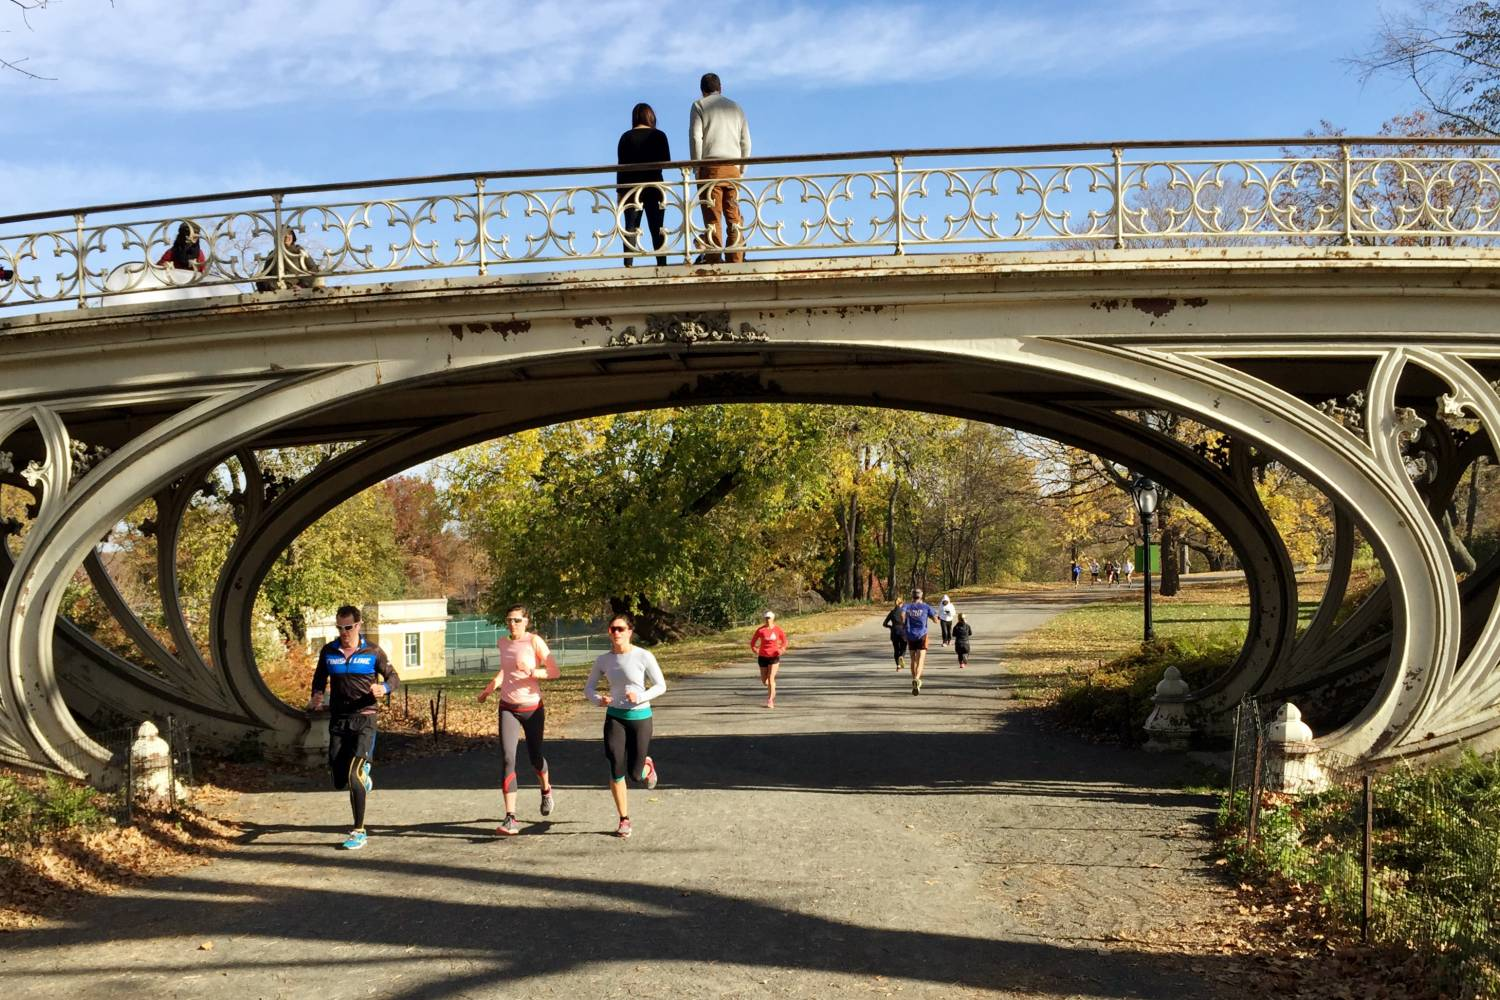 Joggers in Central Park Manhattan